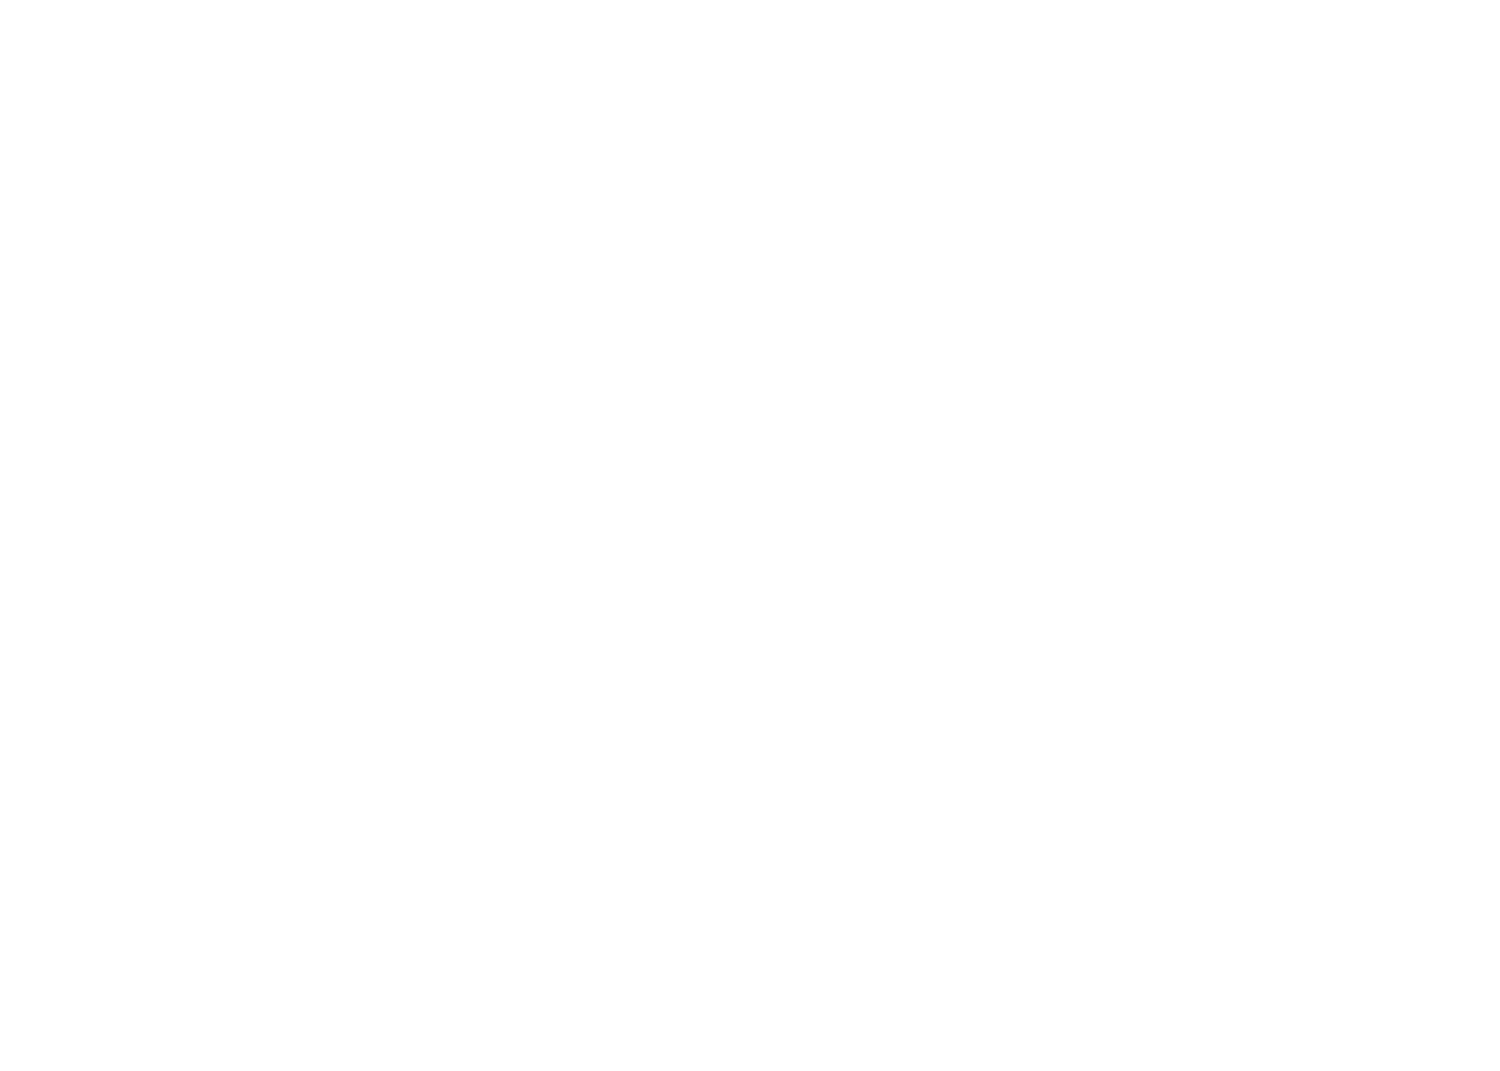 Sightglass Photography